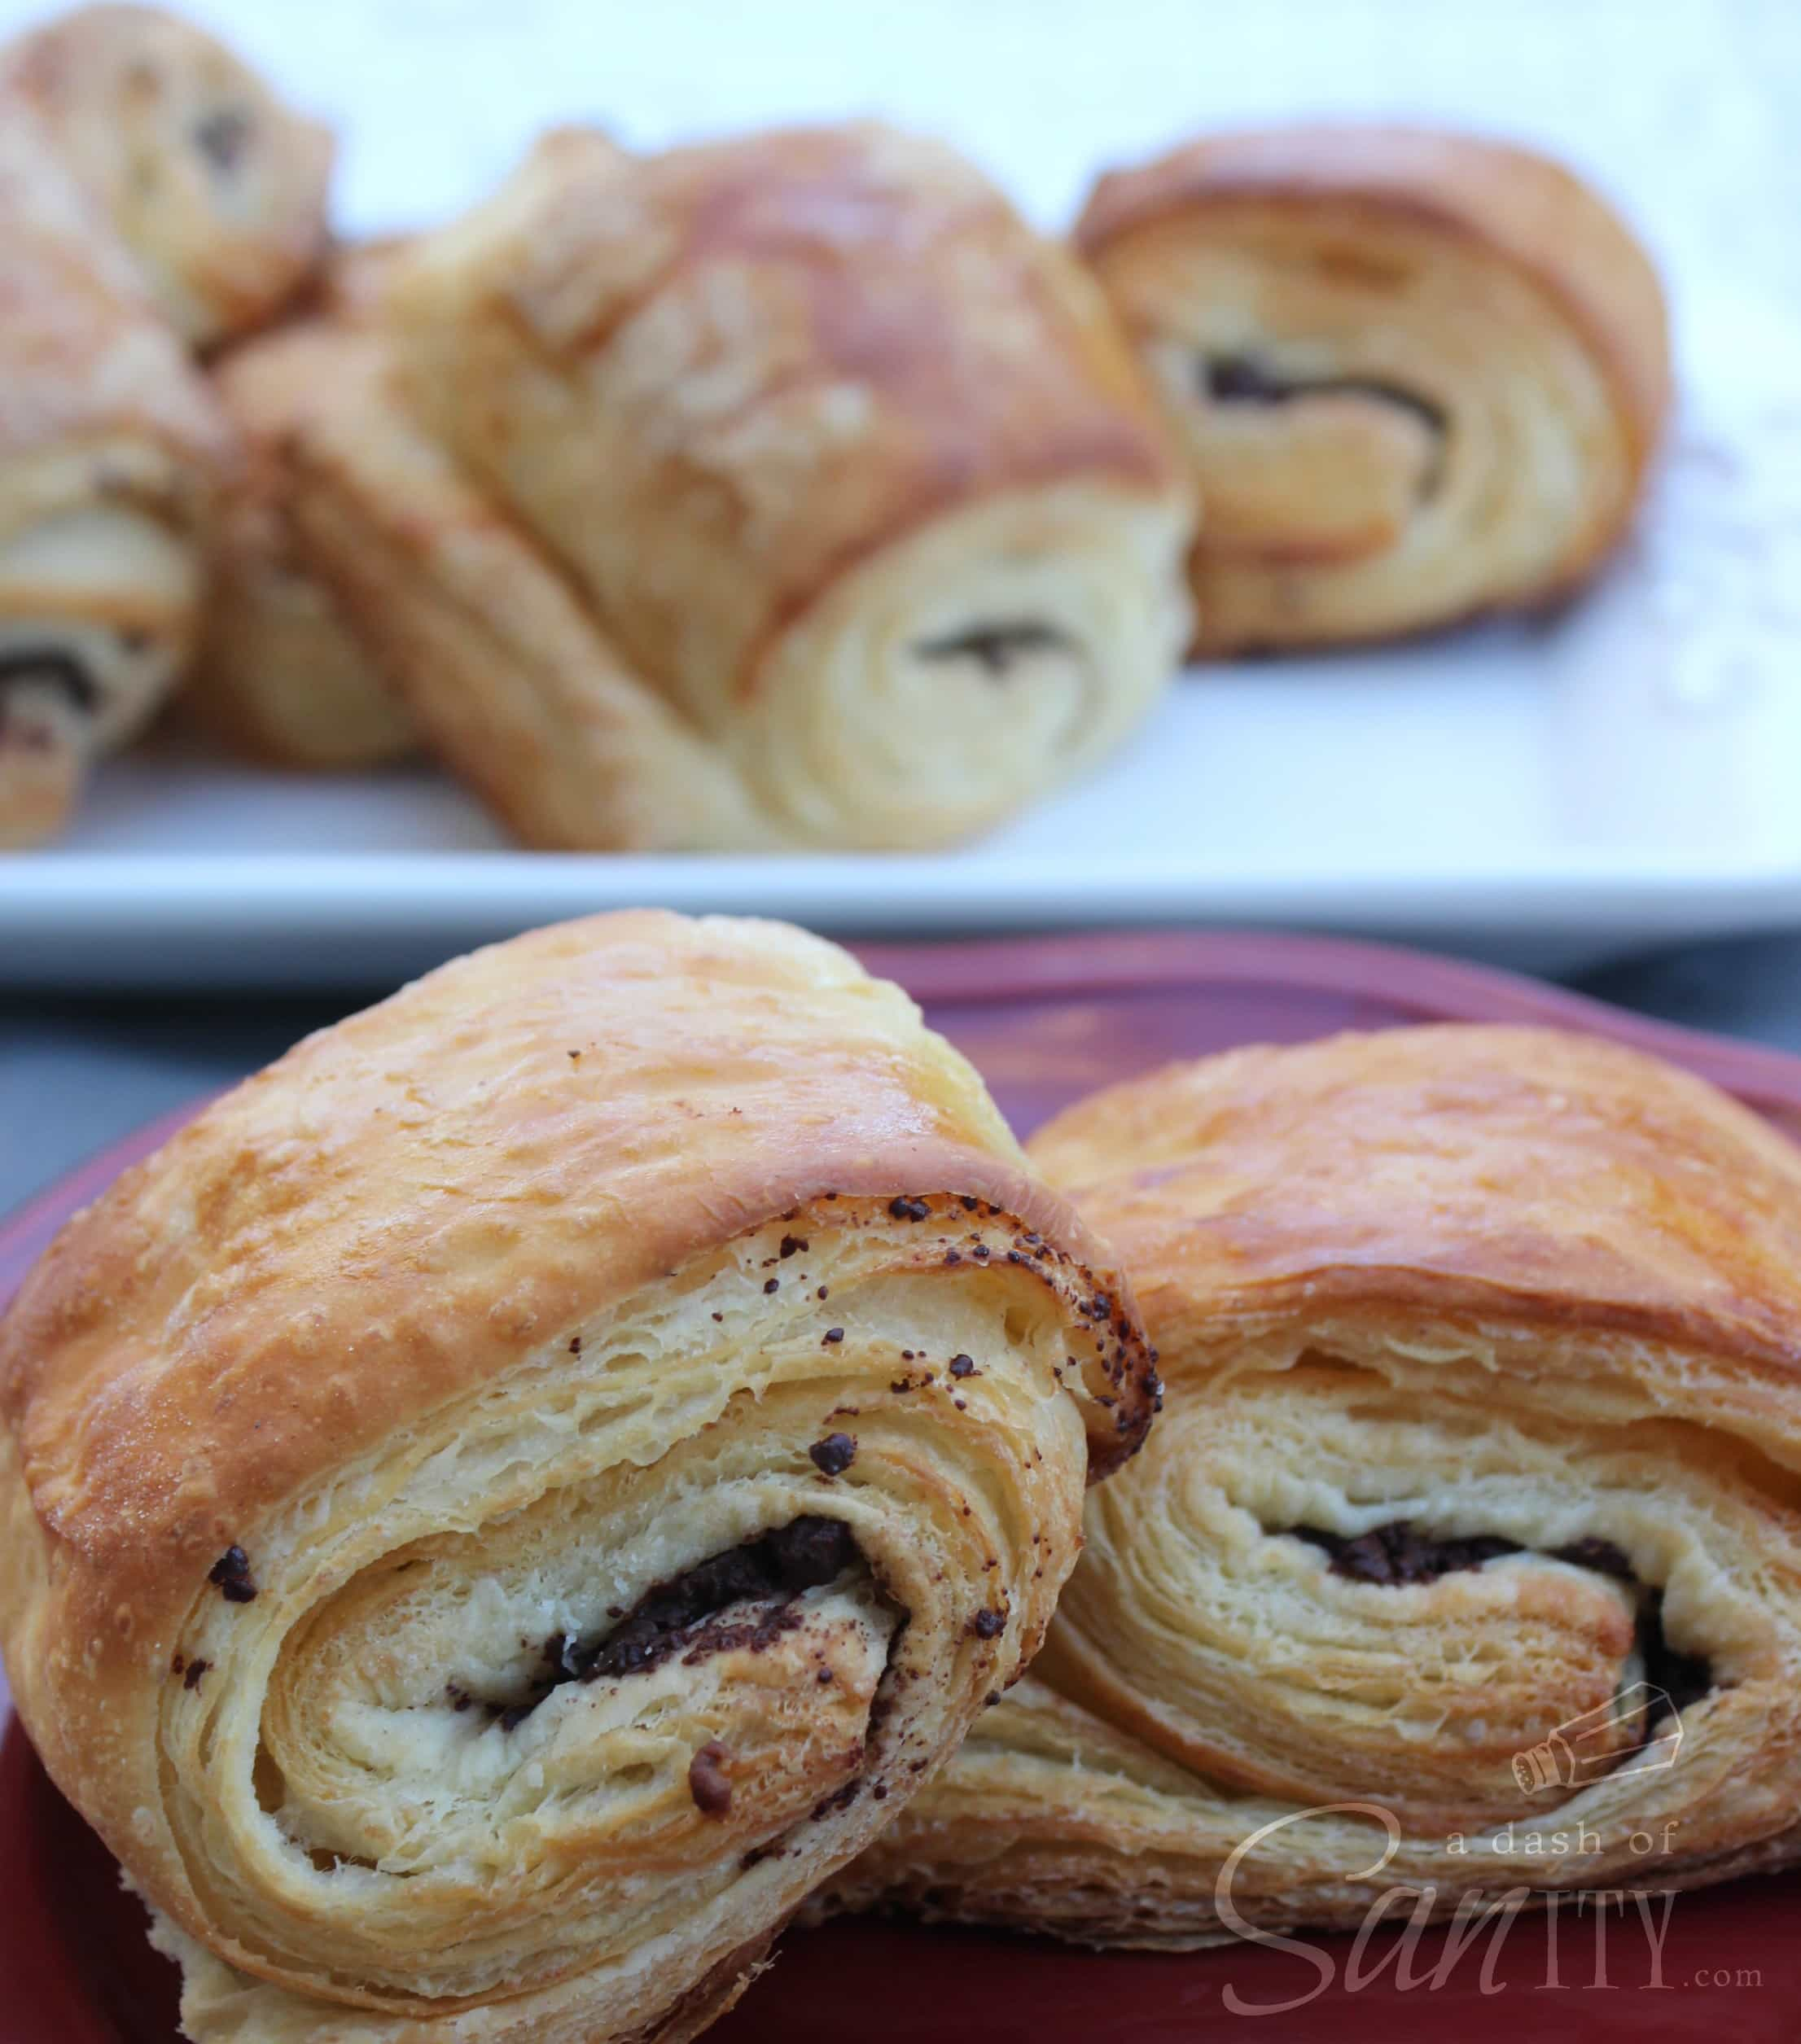 2 Chocolate Croissants served on a plate up close, with serving tray of Chocolate Croissants in background